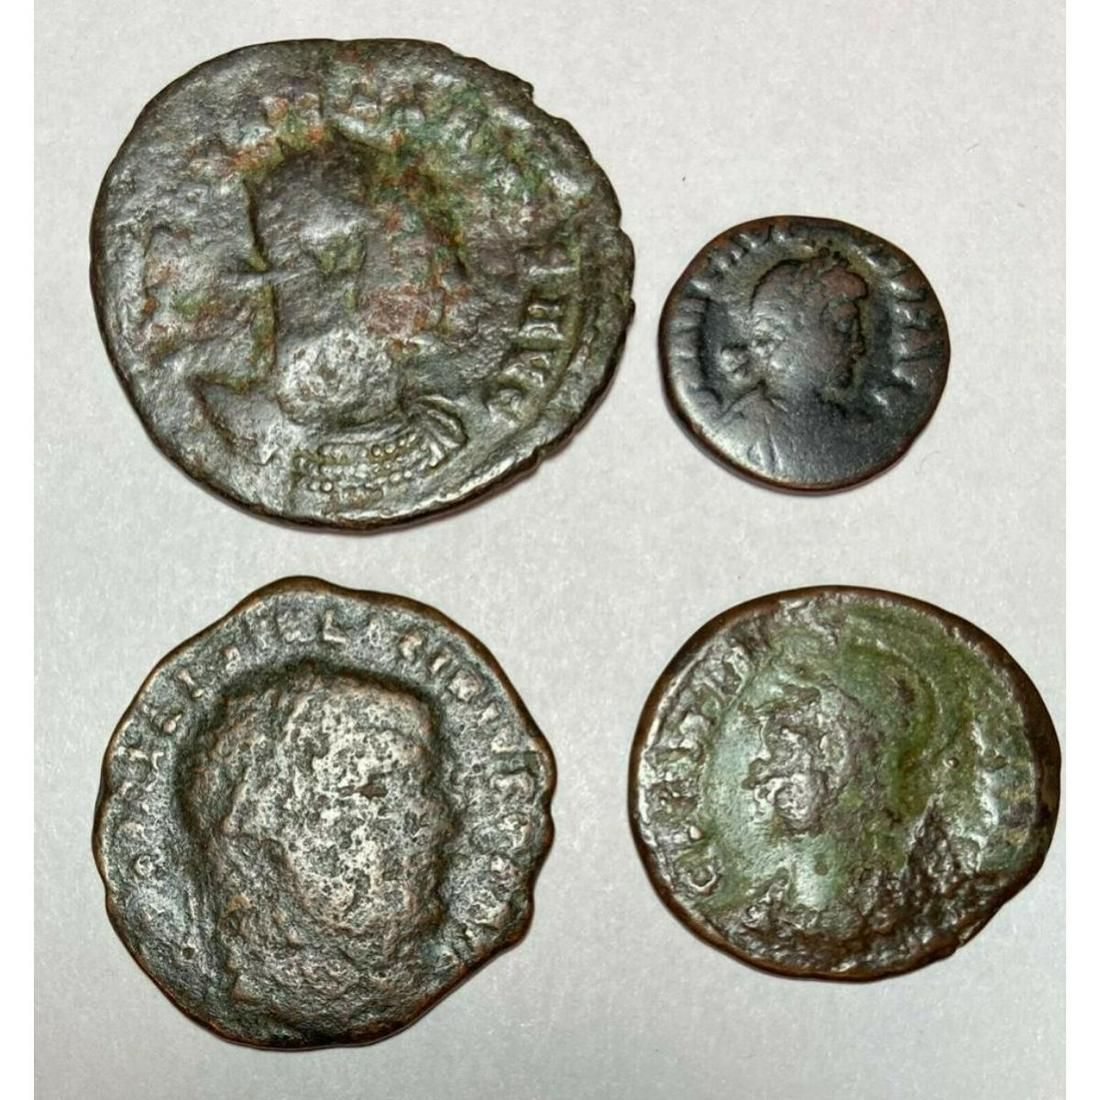 Group of Ancient Roman Bronze Coins